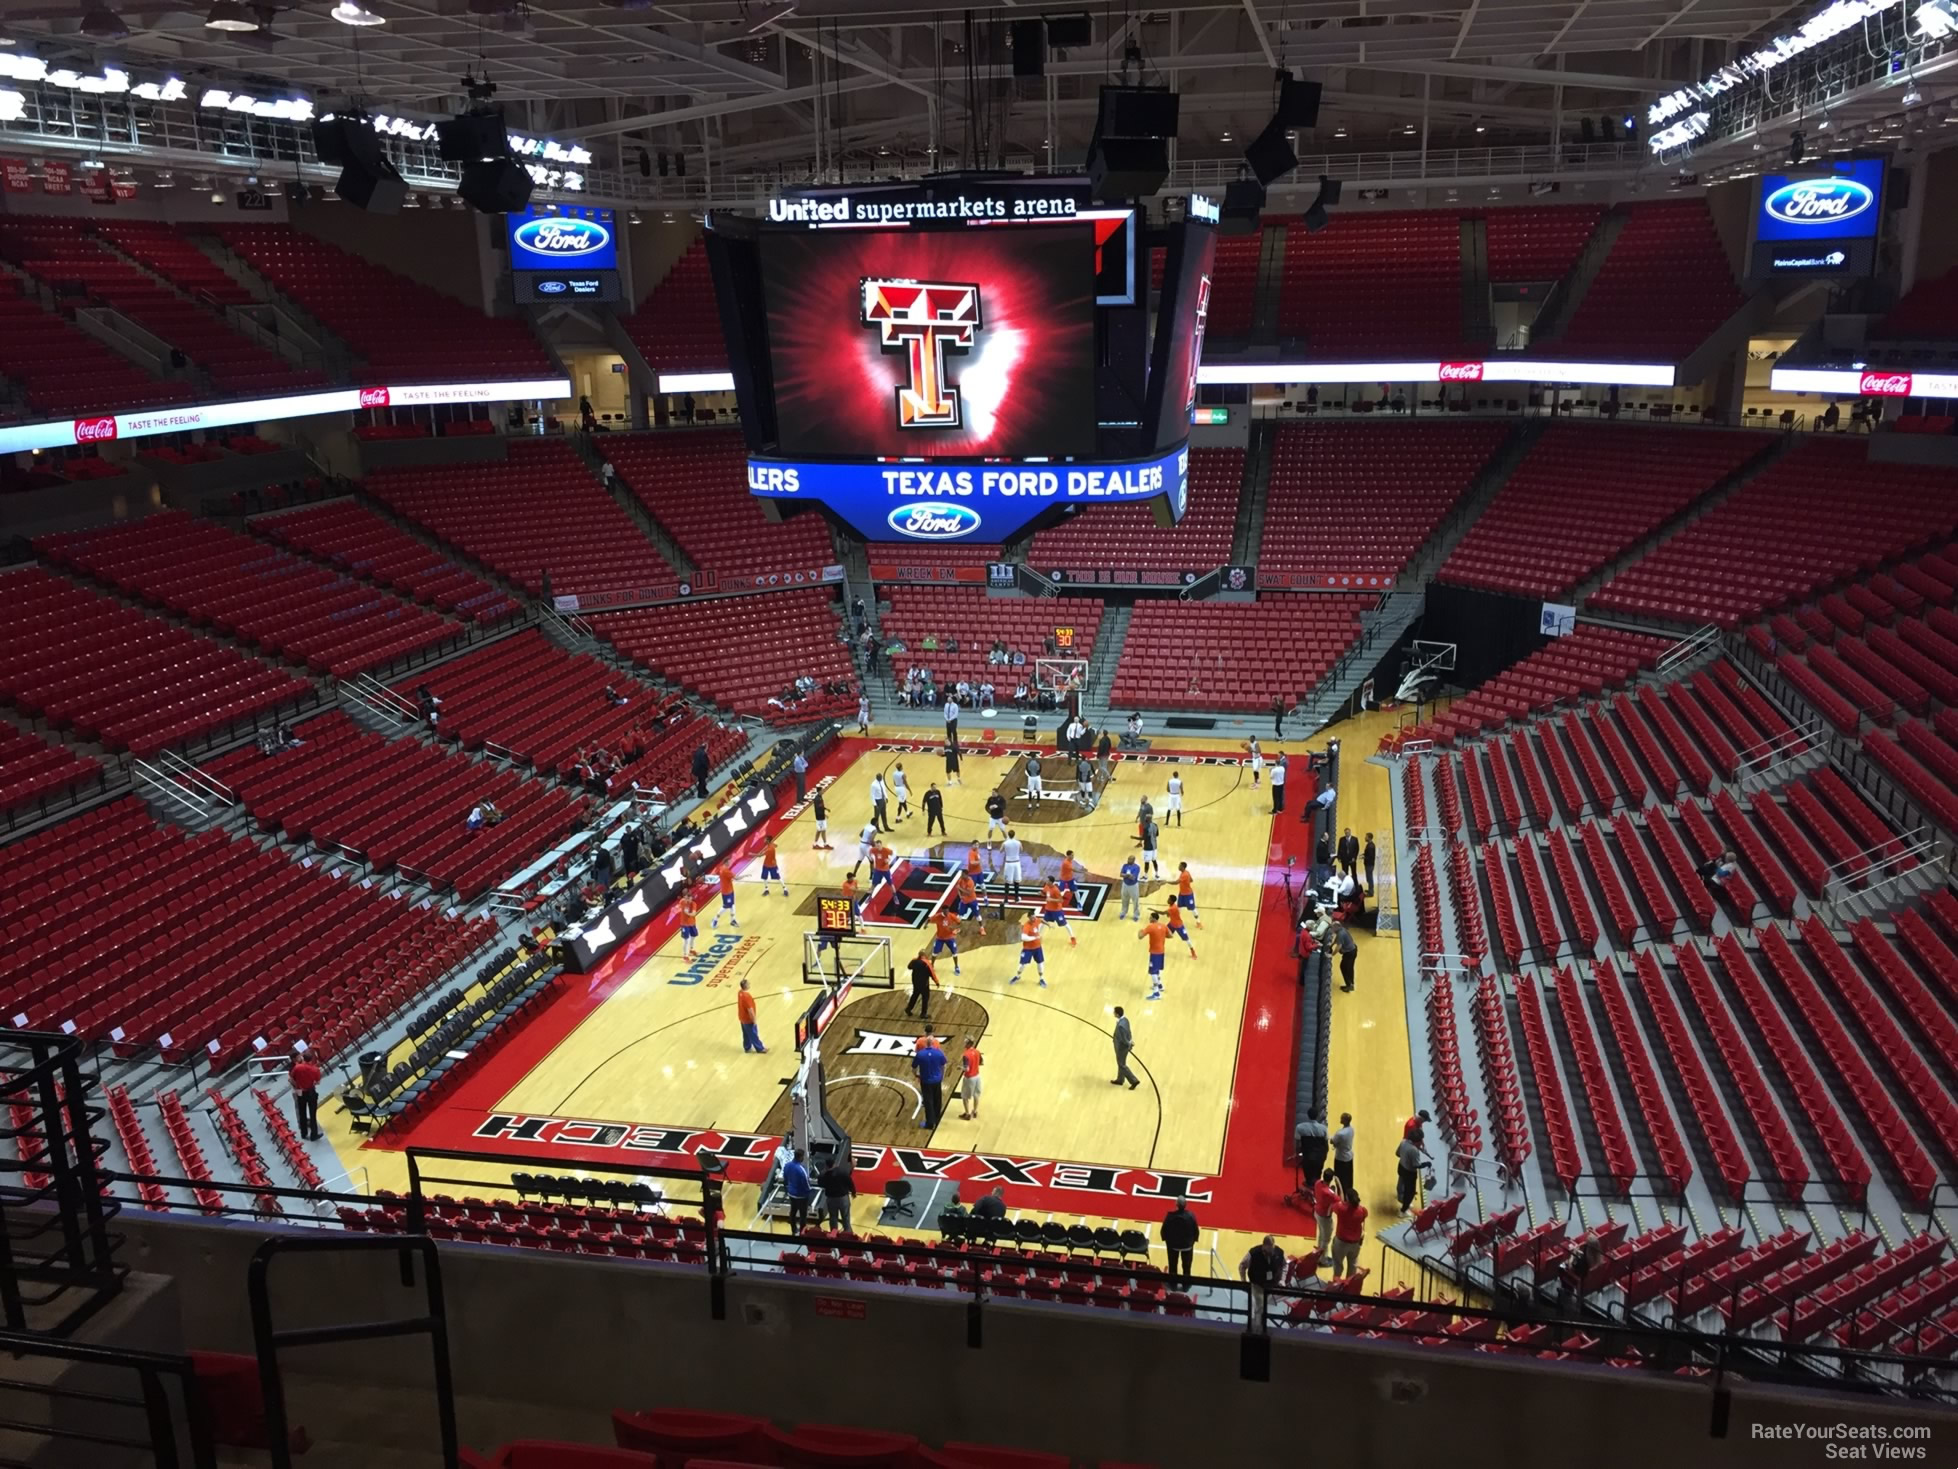 Seat View For United Supermarkets Arena Section 208 Row 7